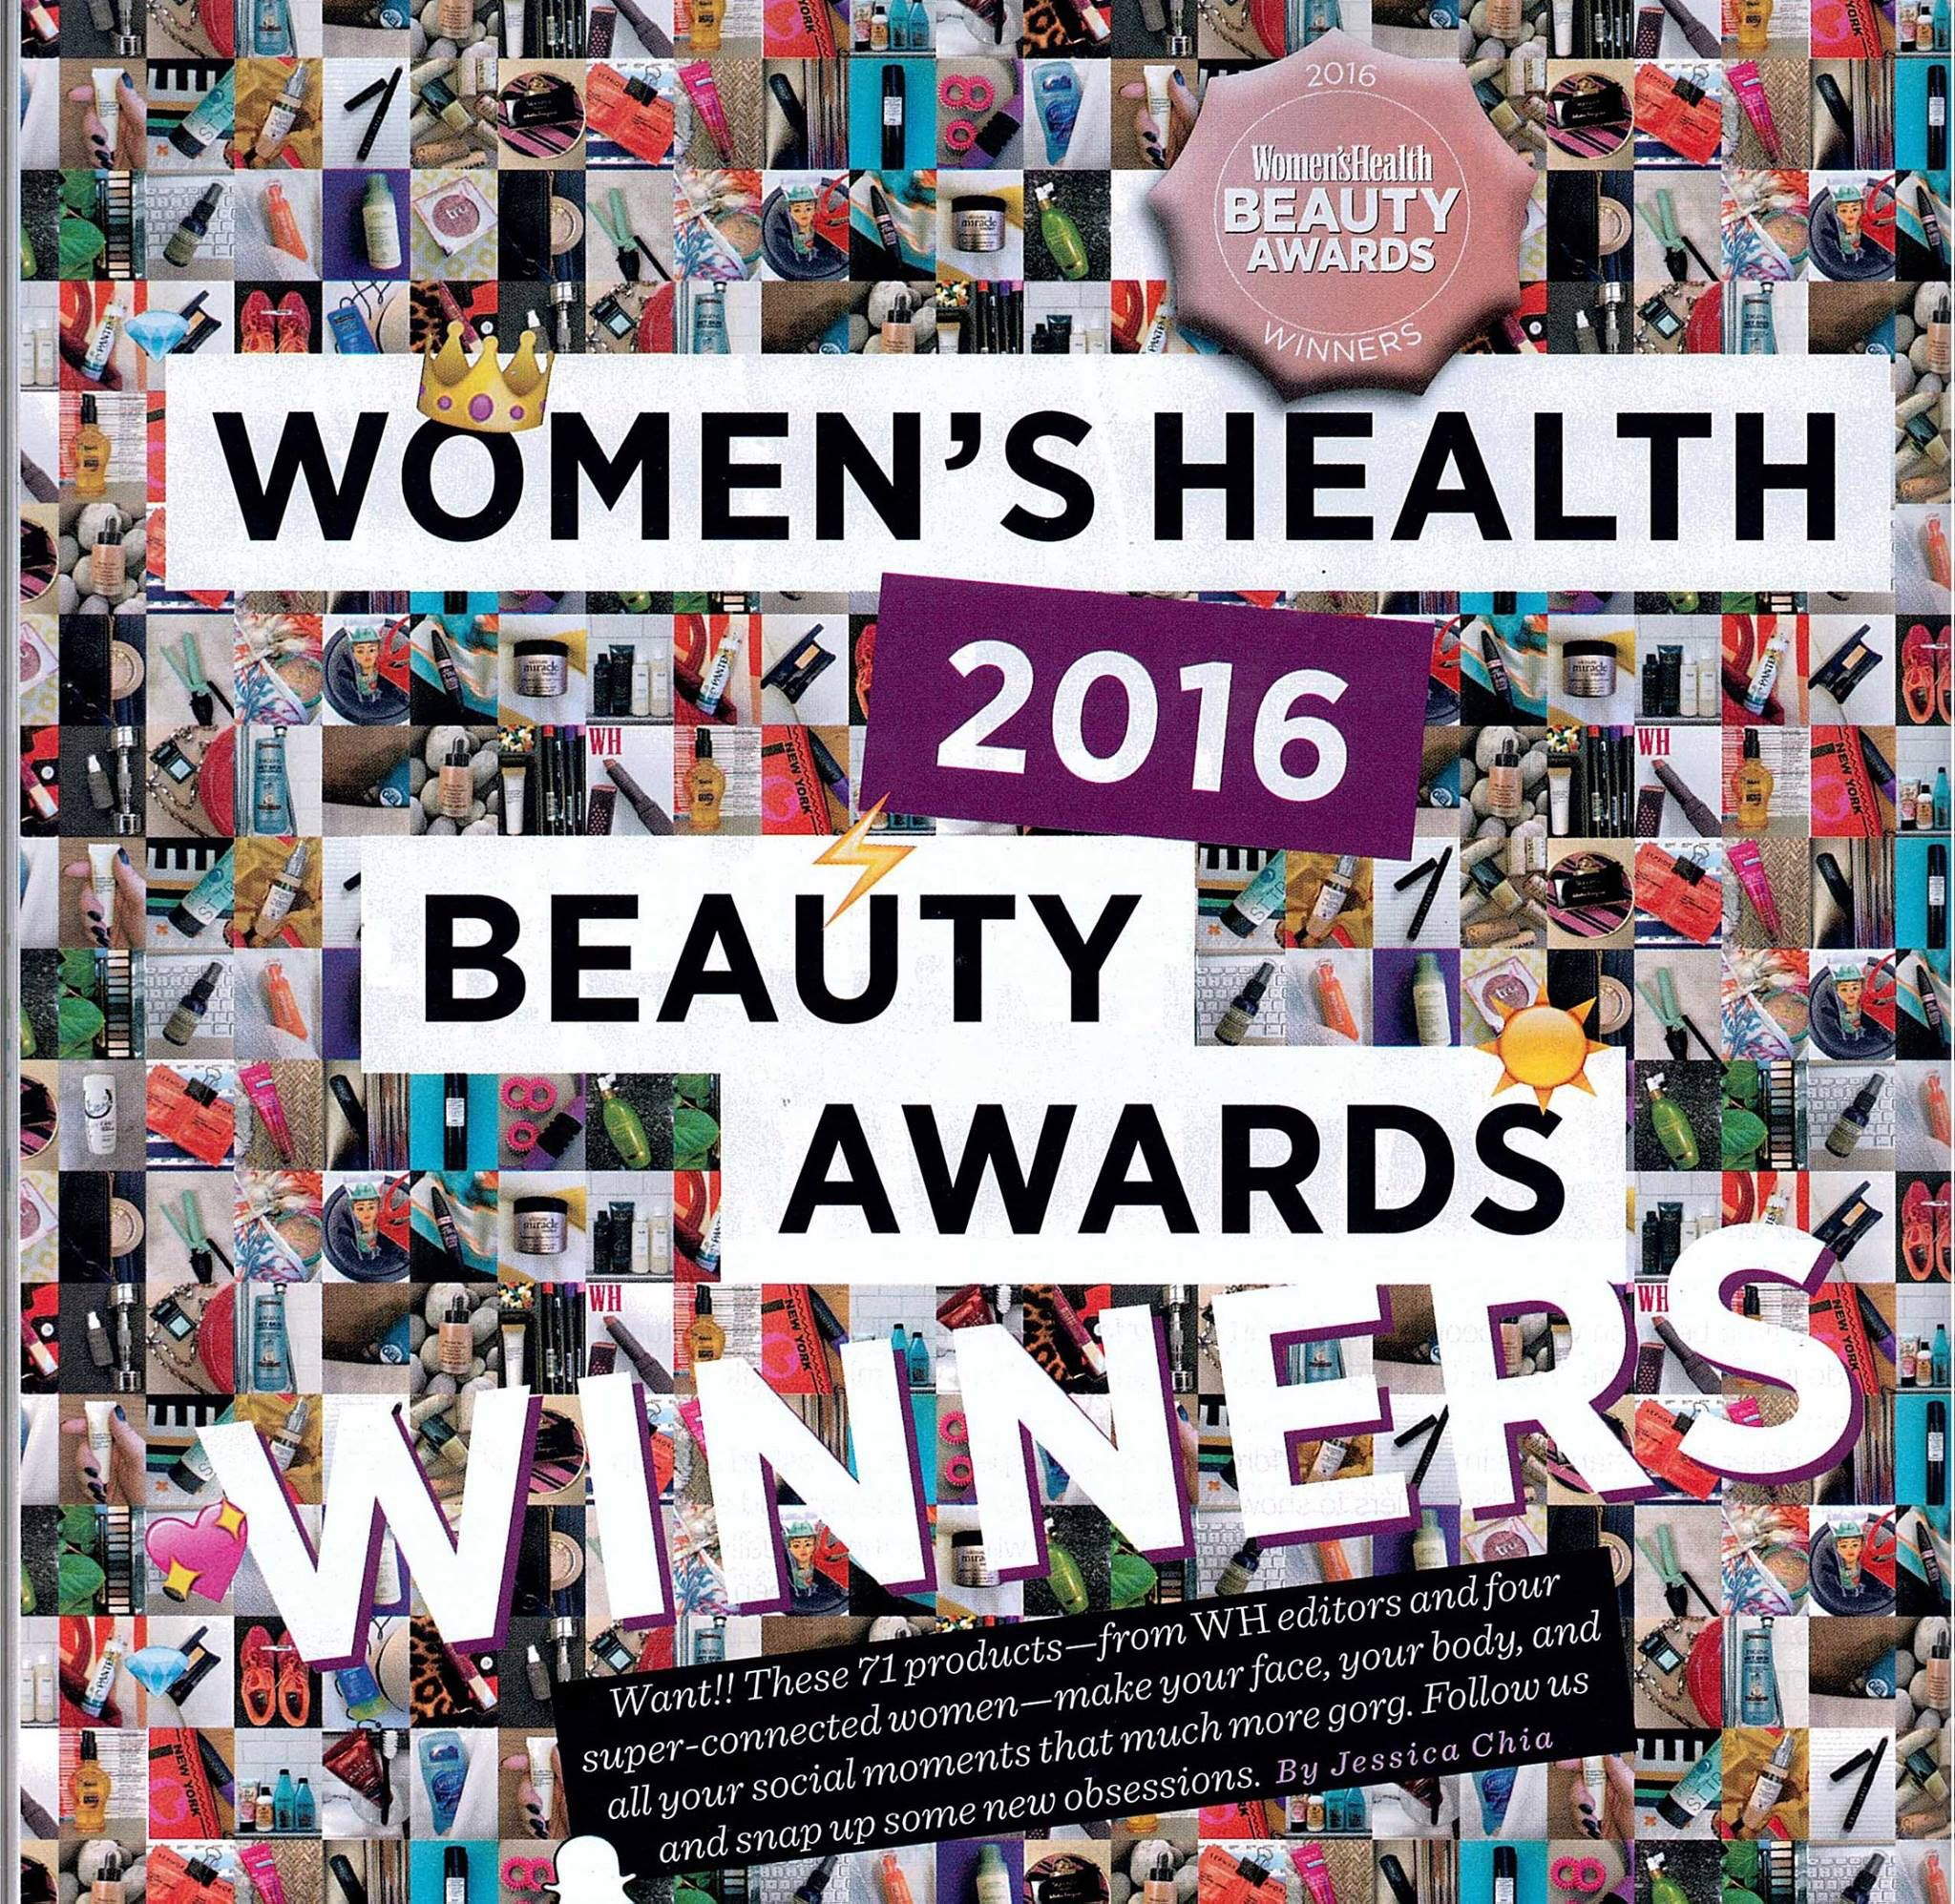 """So excited to share that our Organic Defence Hand Spray has won a Women's Health 2016 Beauty Award in the """"At Work"""" category! The purifying blend of pure organic essential oils with witch hazel helps to protect and keep hands naturally clean and fresh for hygienic hands on-the-go!"""